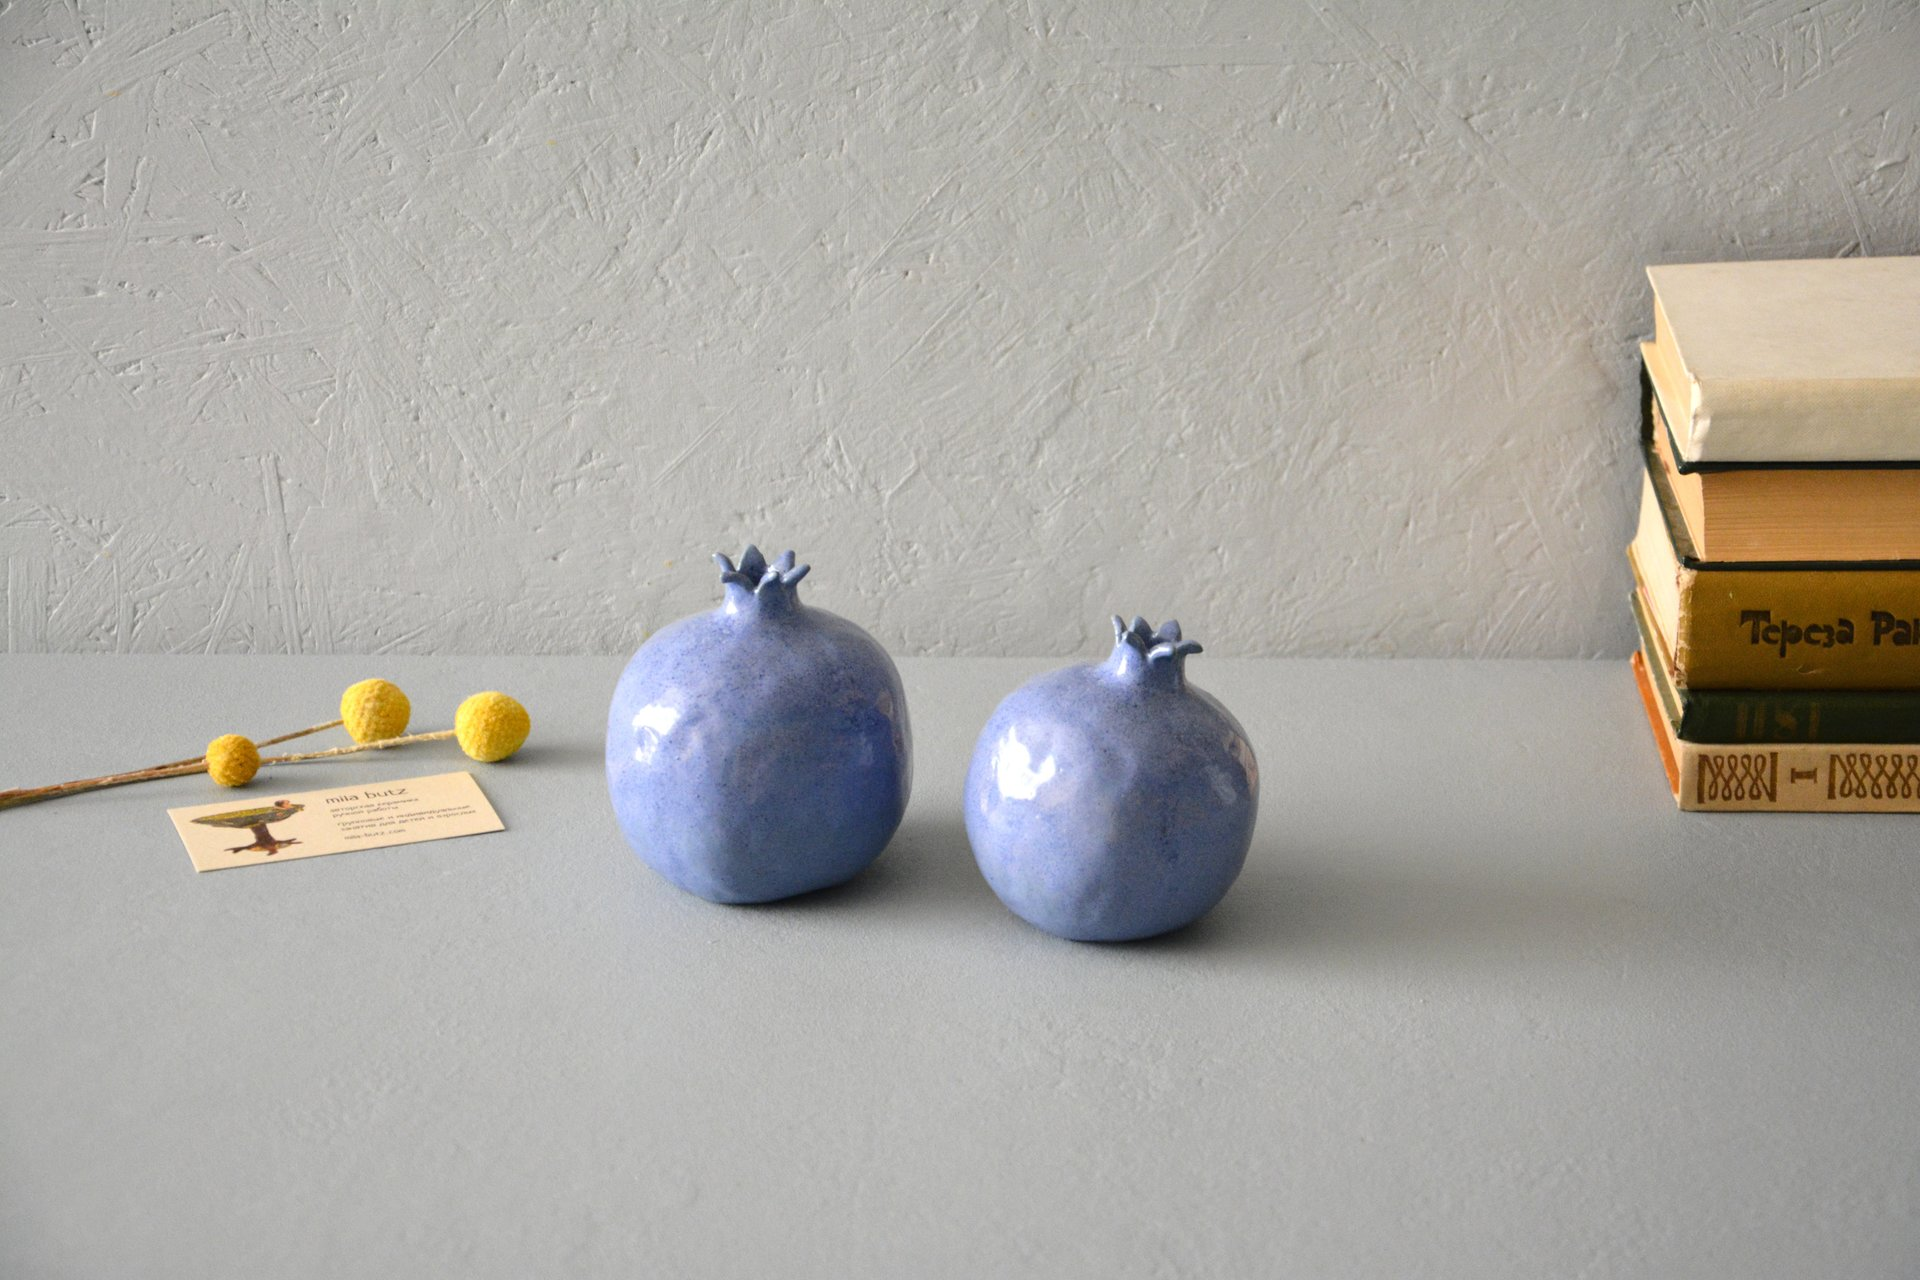 Two blue ceramic pomegranates, height - 10 cm, photo 1 of 5.